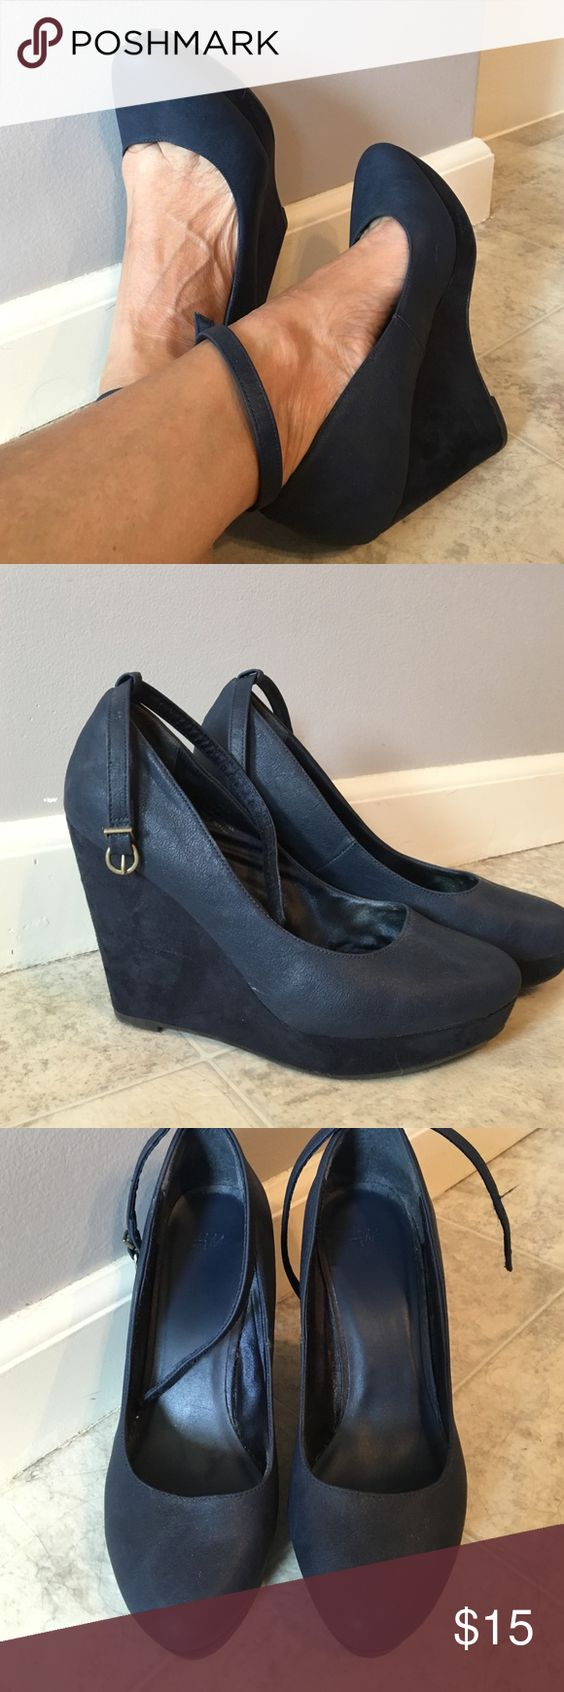 Wedges Great for fall looks.   Navy blue wedges with ankle strap. H&M Shoes Wedges